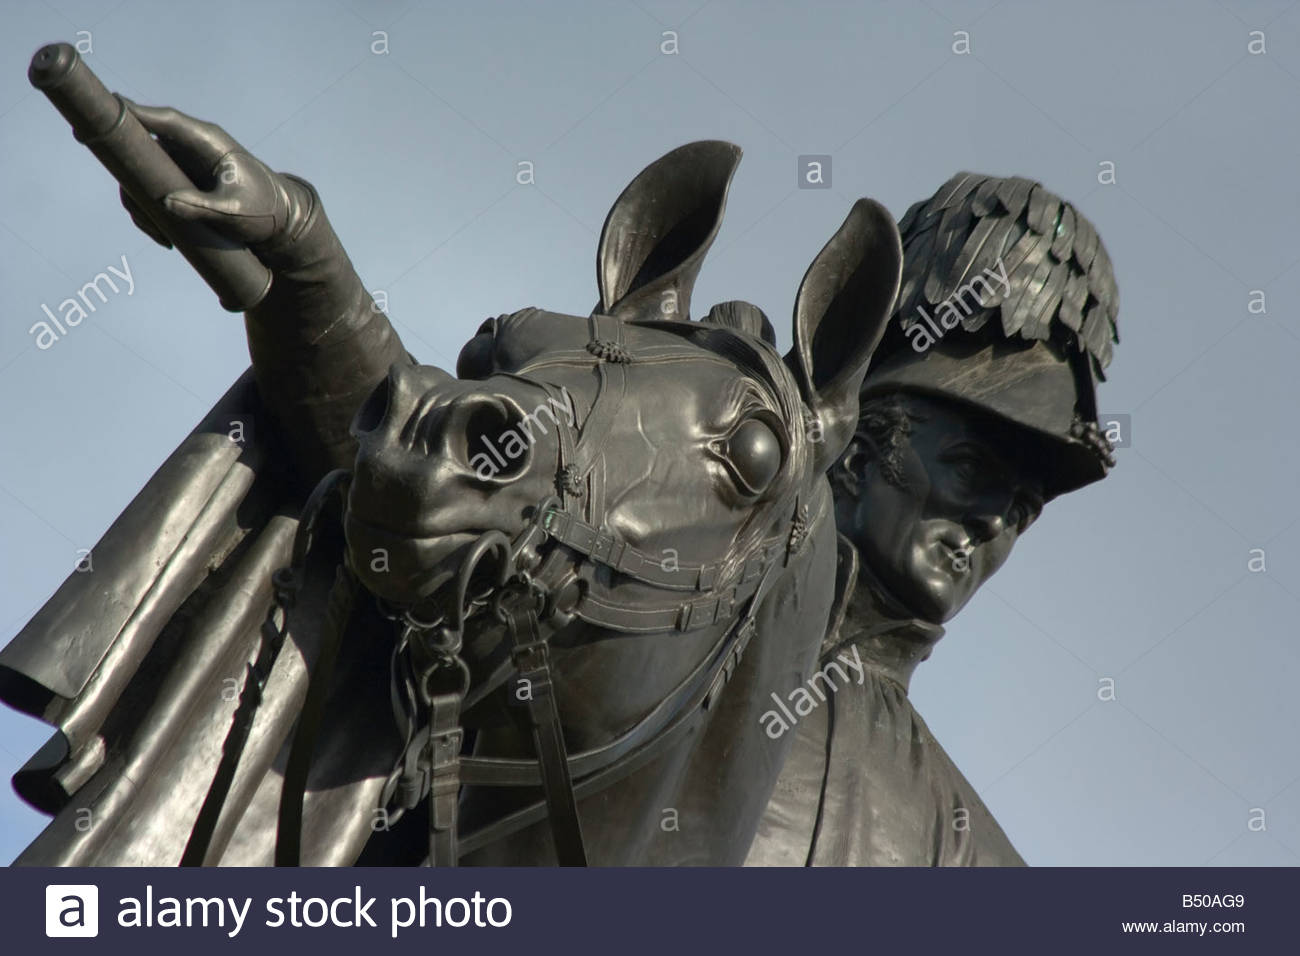 Statue of 1st Duke of Wellington Arthur Wellesley and his horse Copenhagen on Round Hill Aldershot England - Stock Image